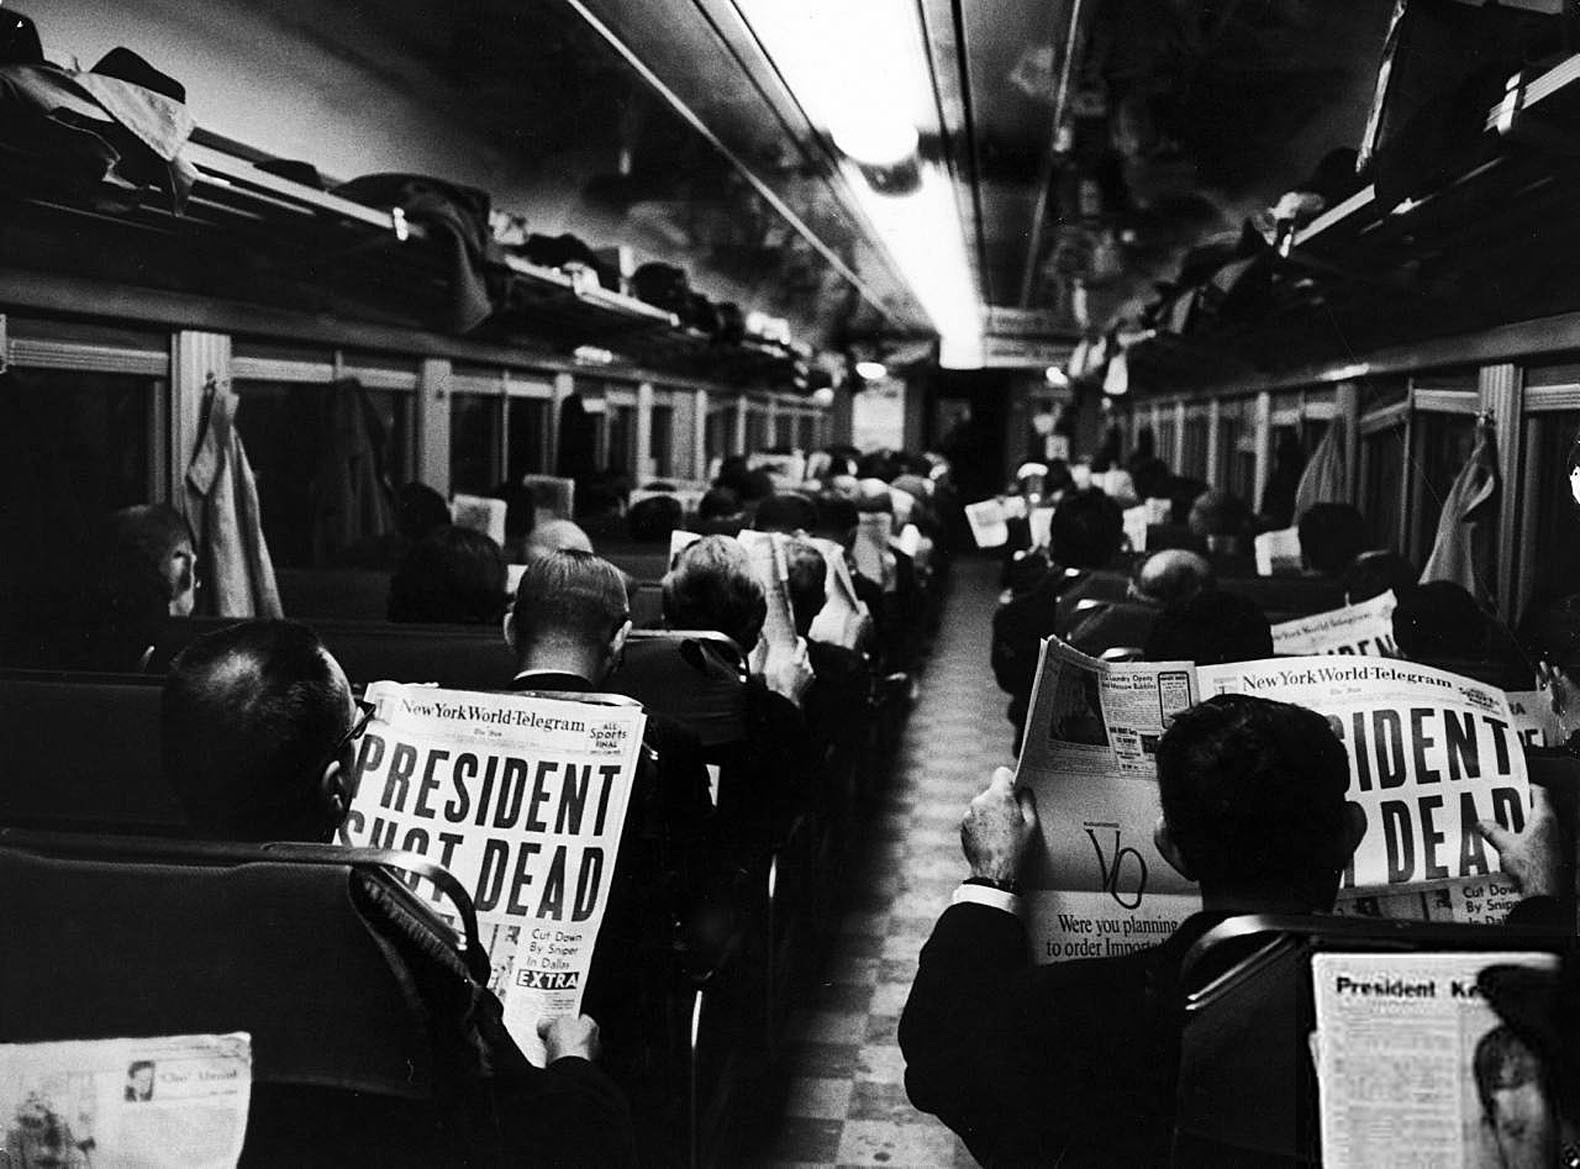 ABC RADIO  JFK ASSASSINATION  NOVEMBER 22  1963     A MOMENT IN TIME  New York City subway commuters reading the headline news   Late